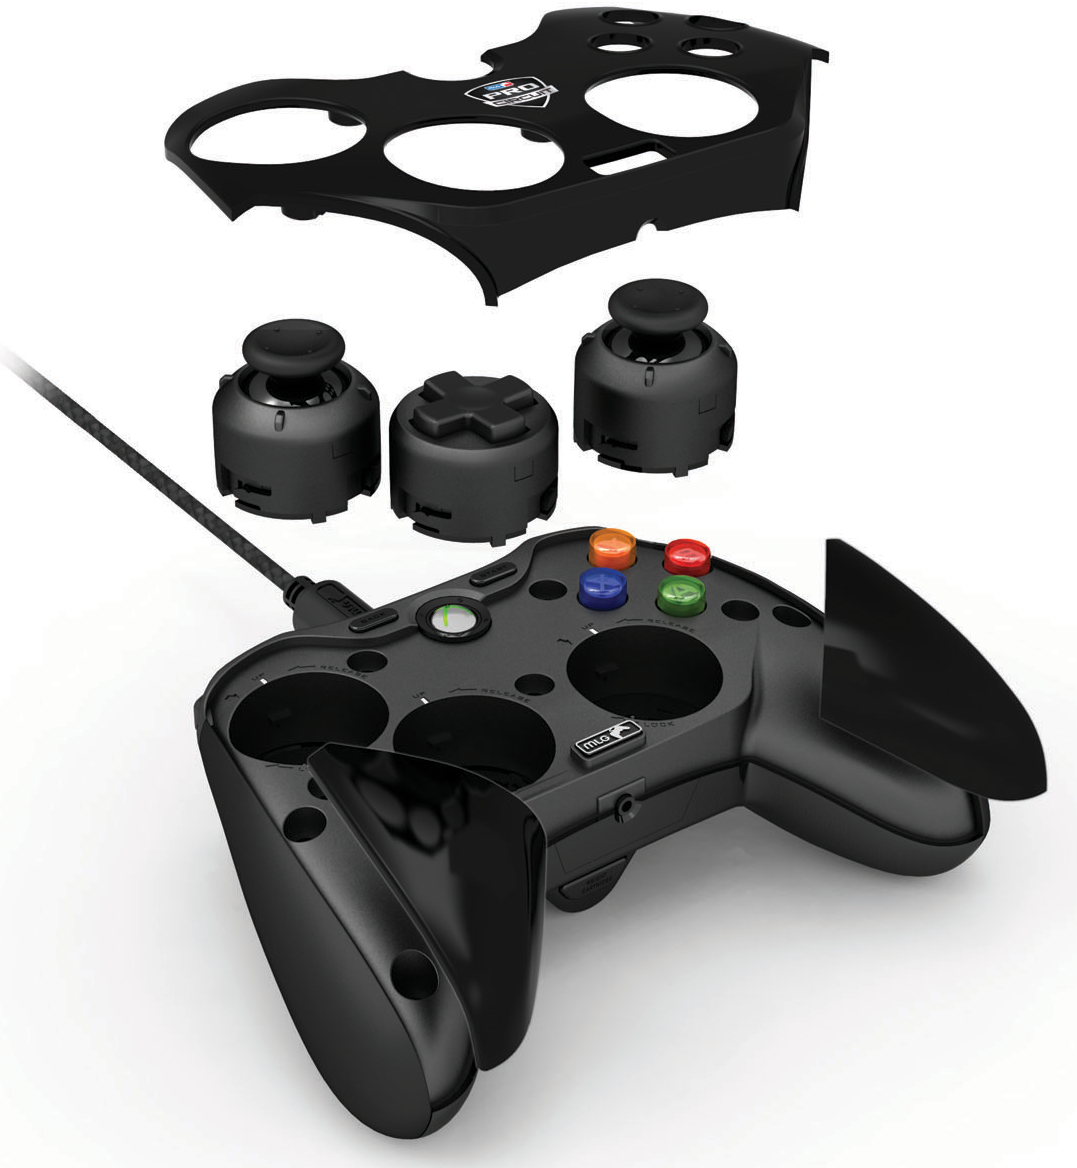 MAD CATZ WIRED XBOX 360 CONTROLLER WINDOWS 10 DRIVER DOWNLOAD